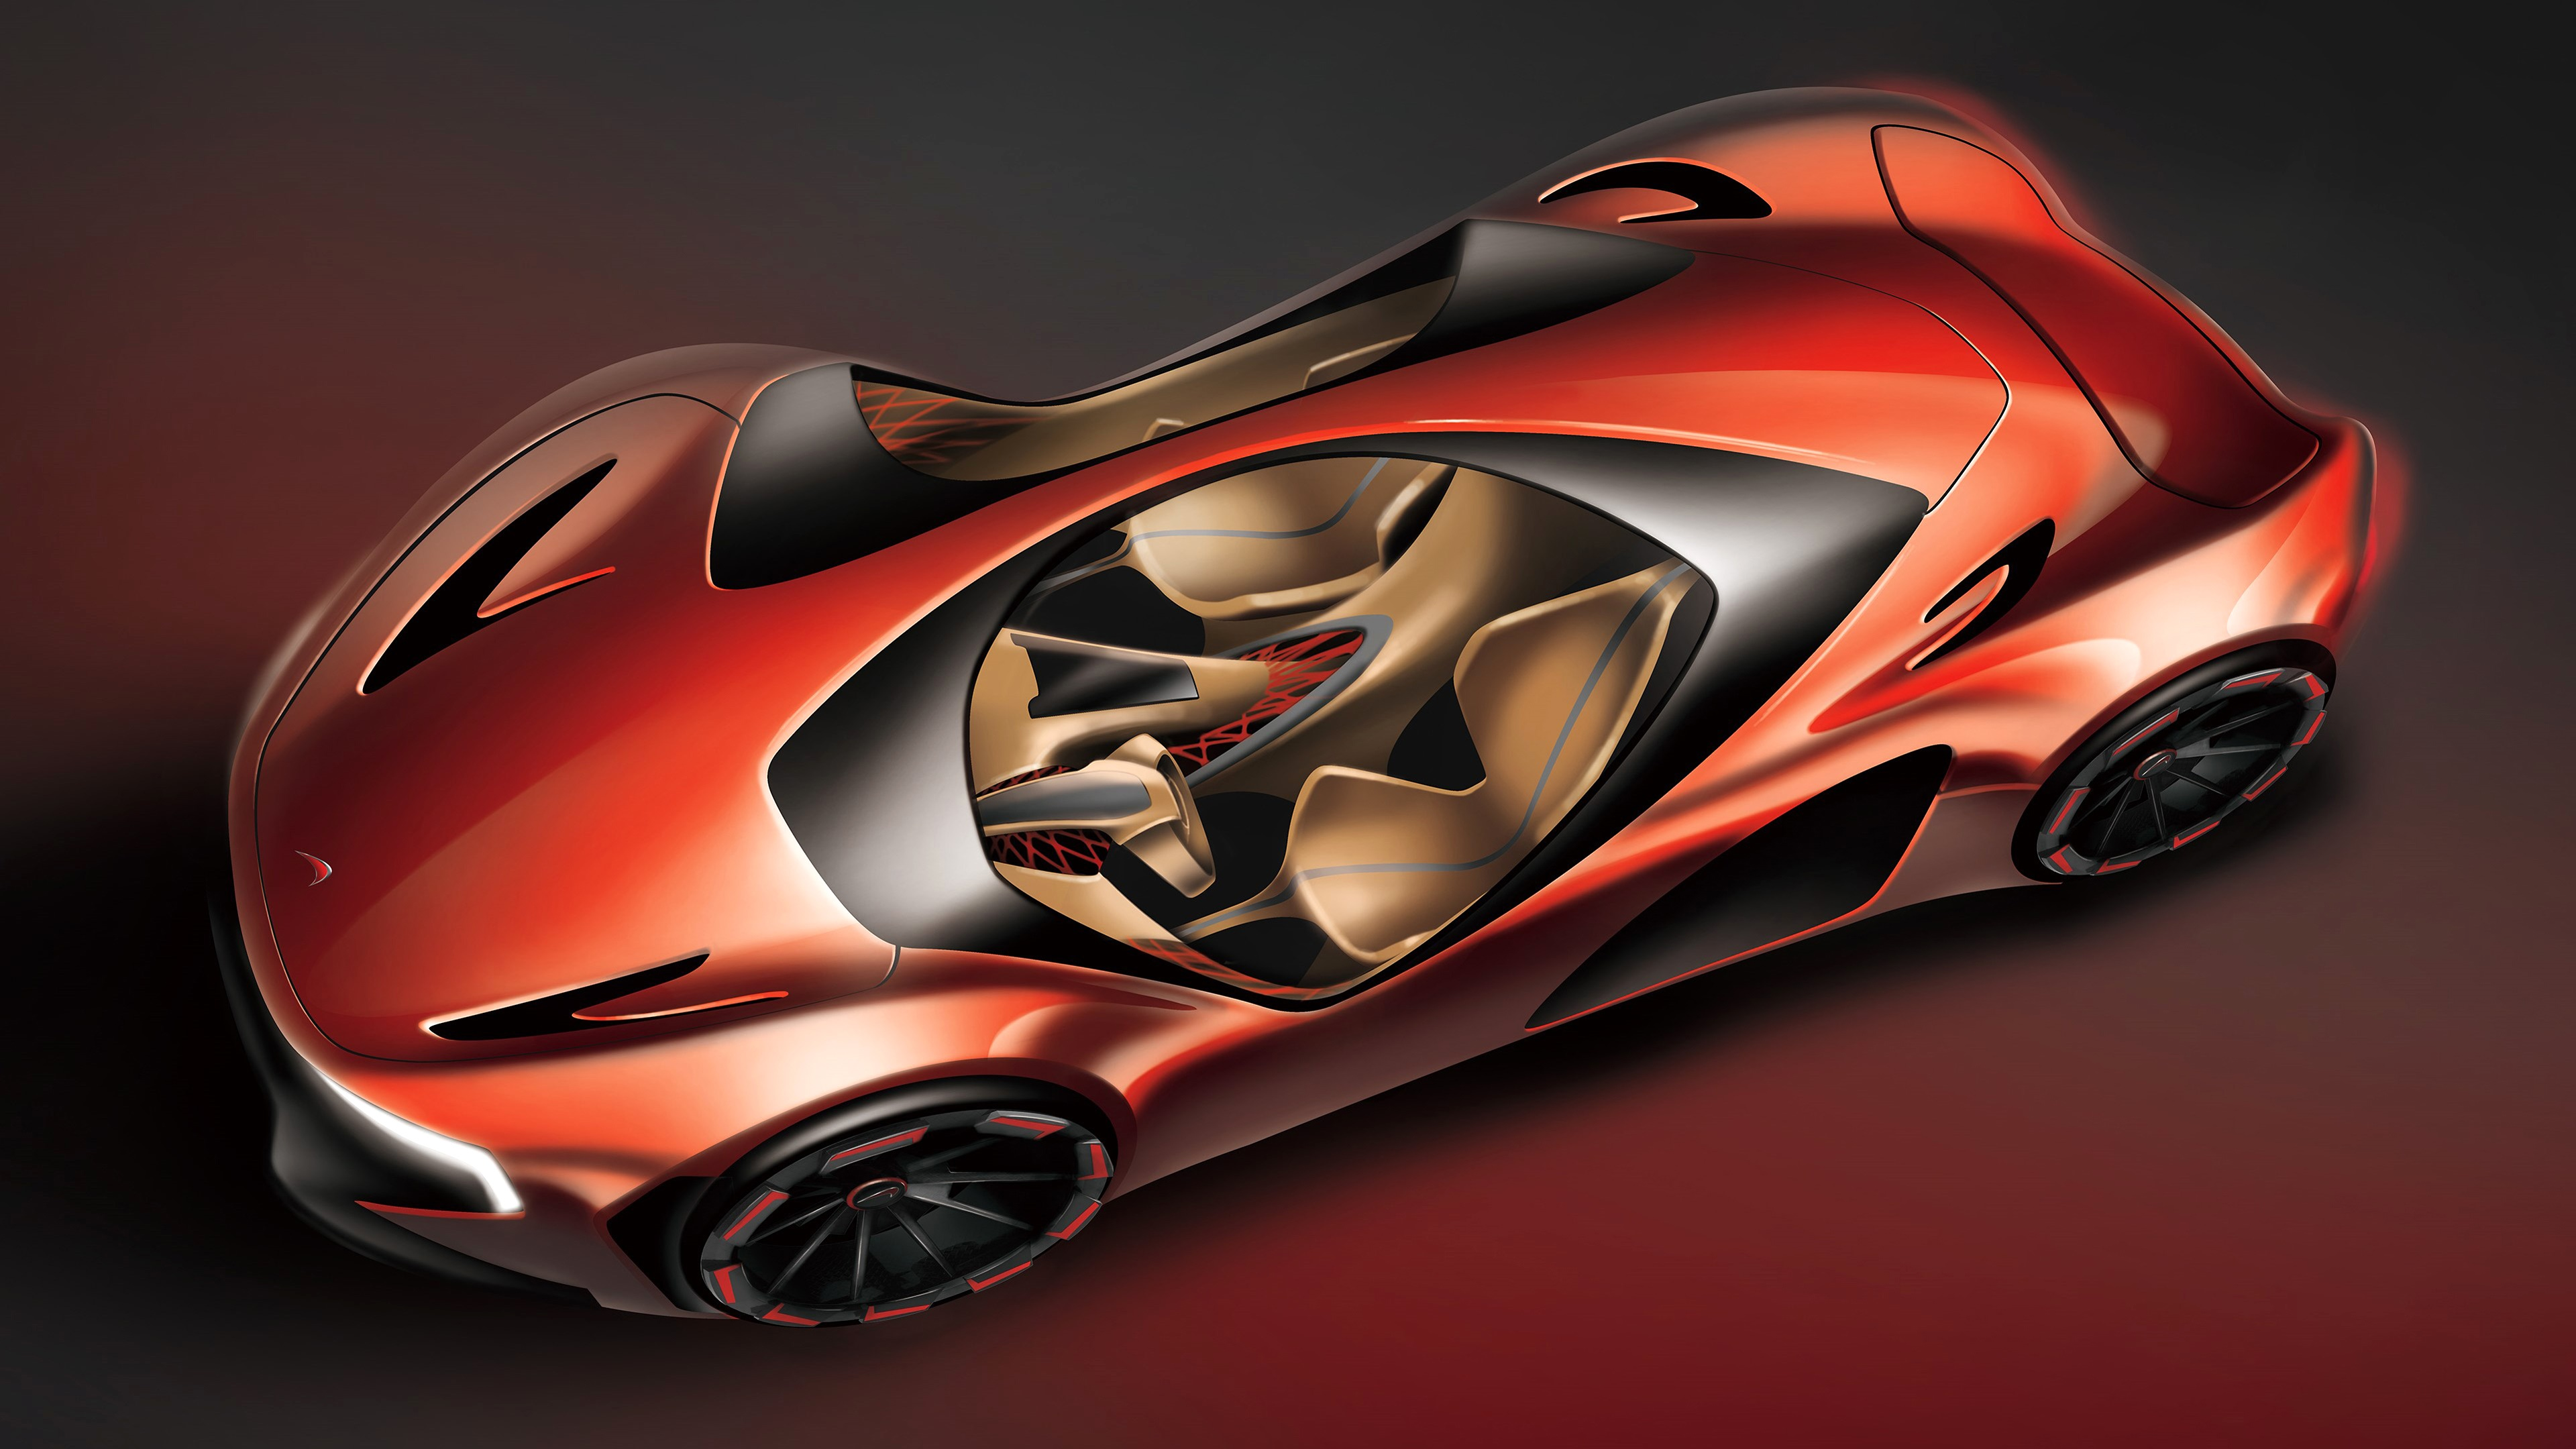 Concept Car Jaguar C X75 4K UltraHD Wallpaper - backiee ...